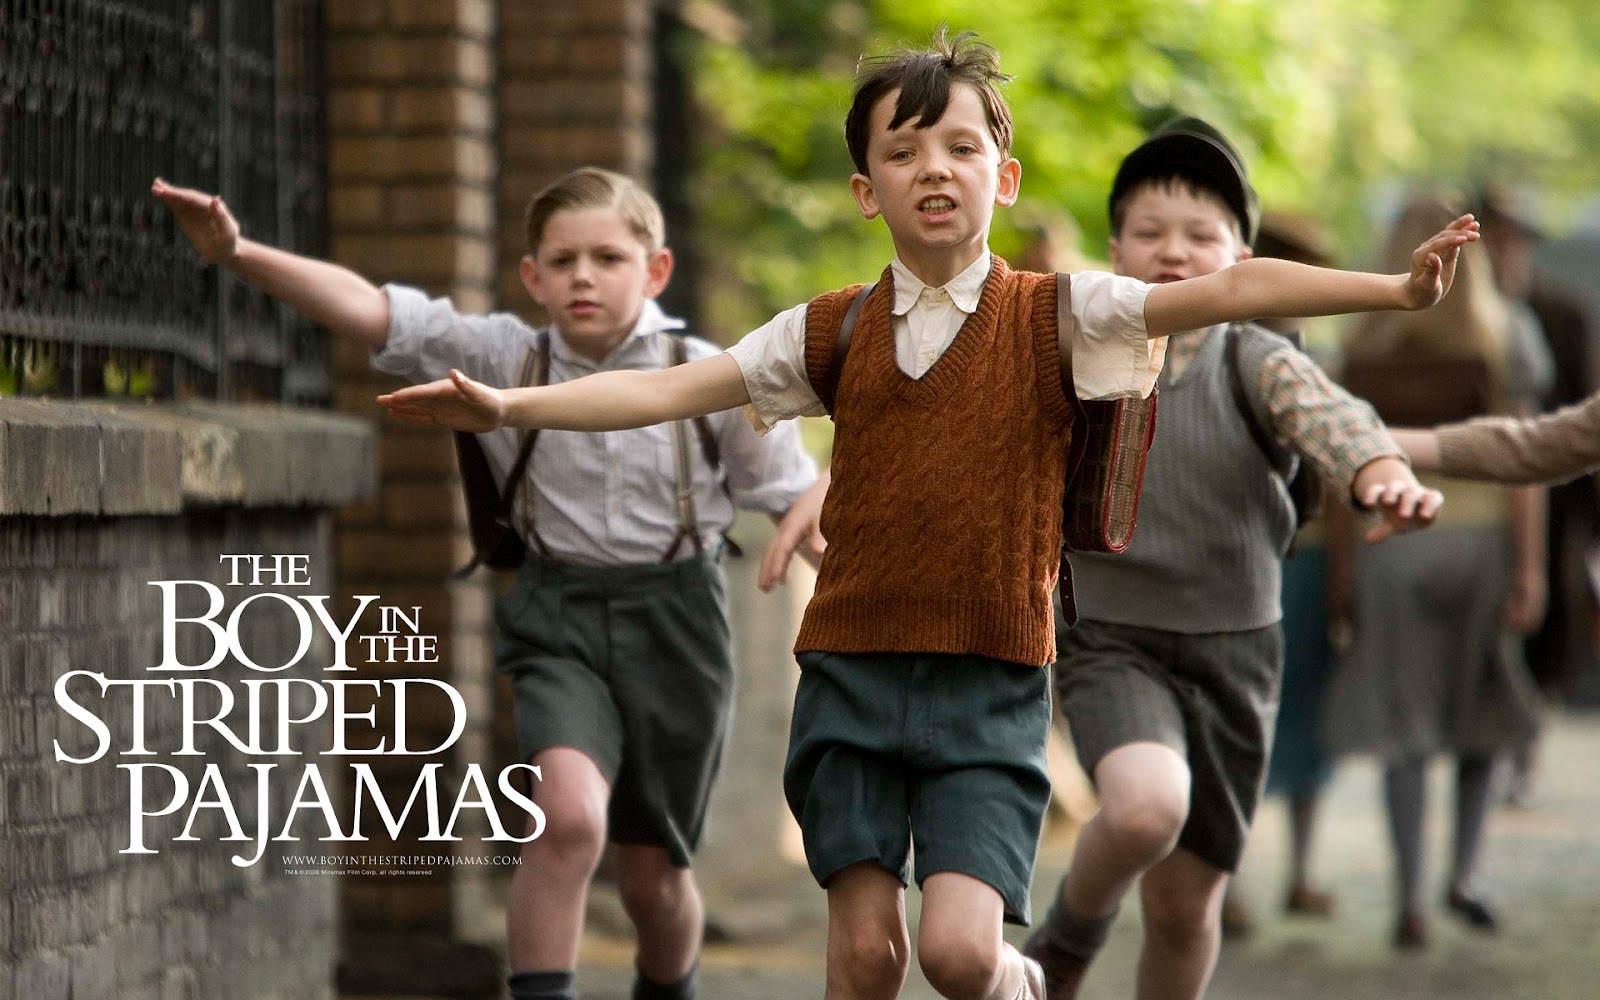 boy in striped pyjamas themes the boy in the striped pajamas  passion for movies the boy in the striped pyjamas holocaust the boy in the striped pyjamas